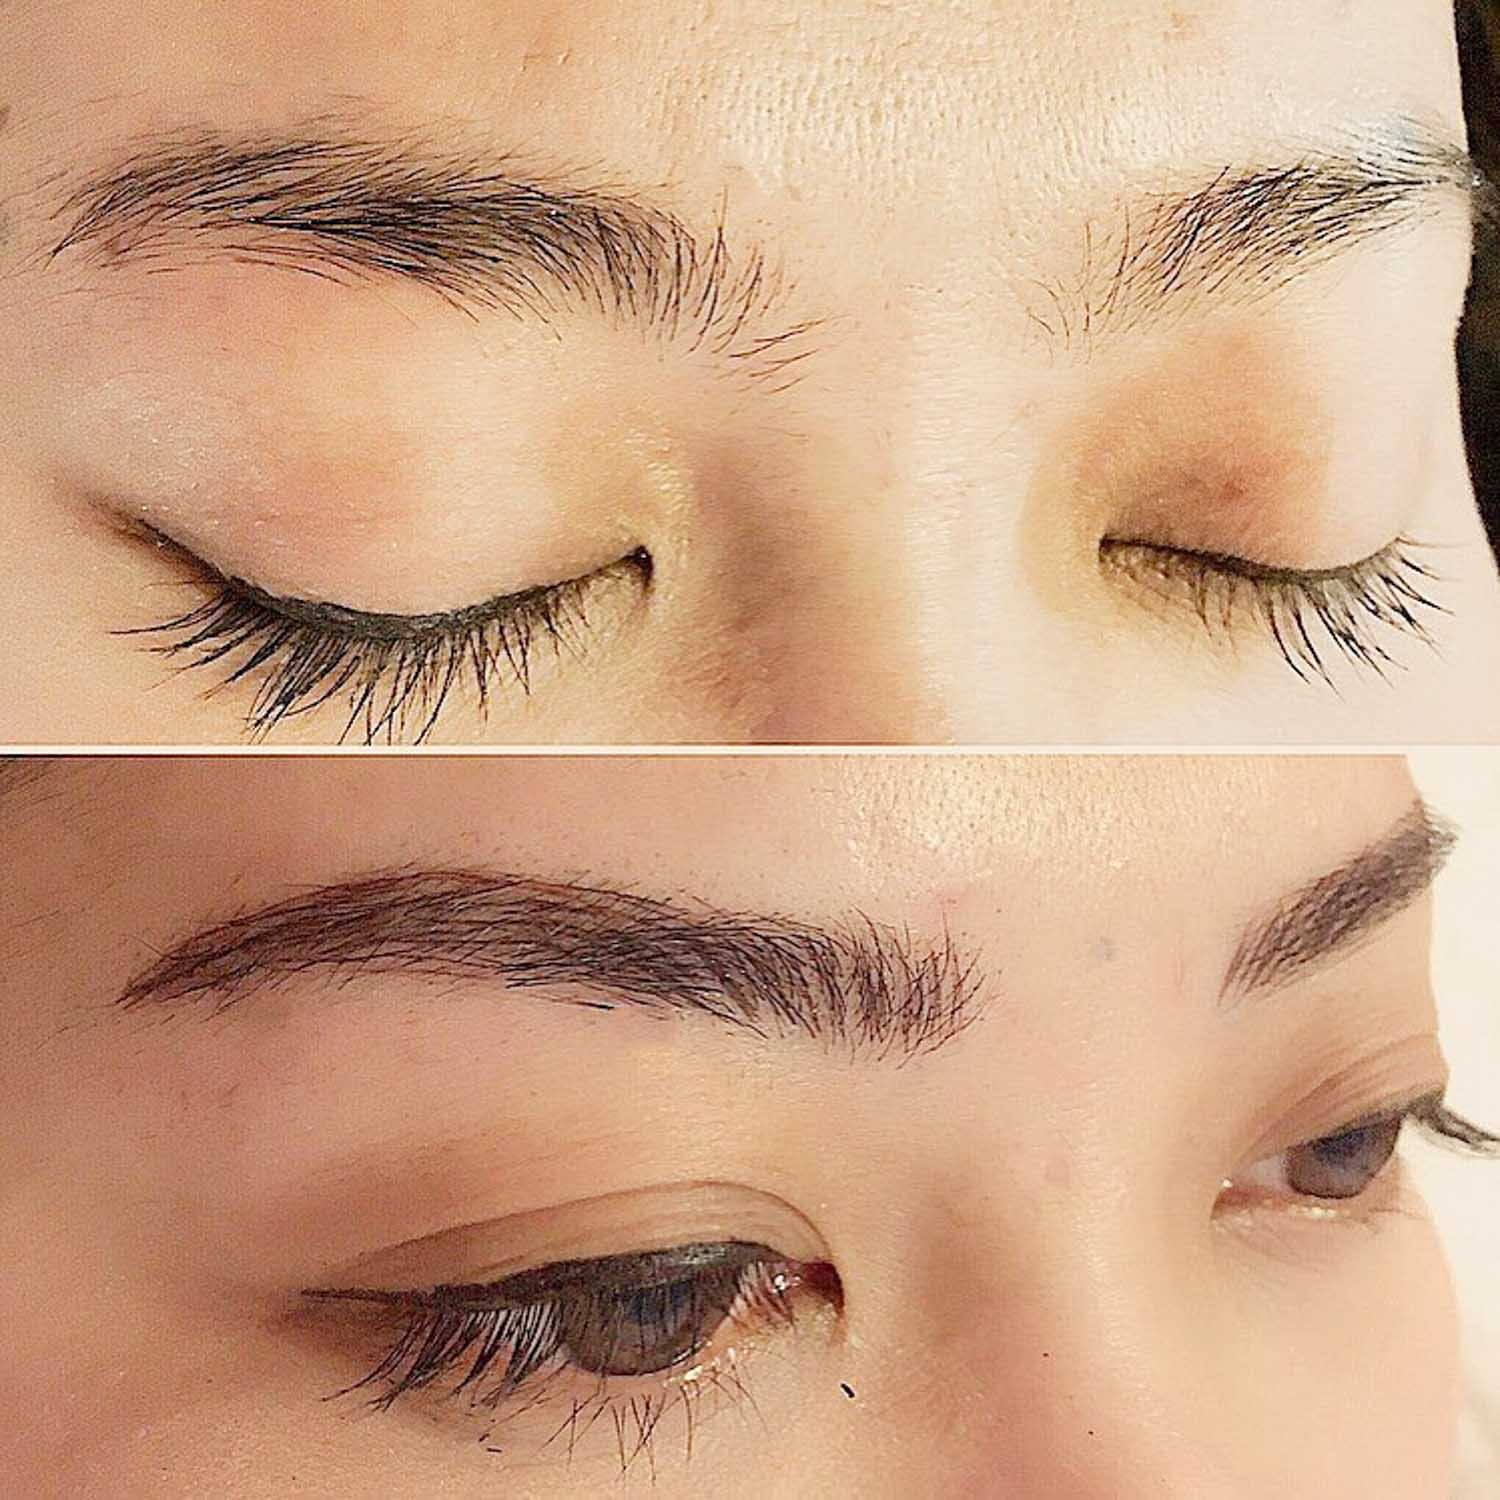 eyebrow tattoo before and after